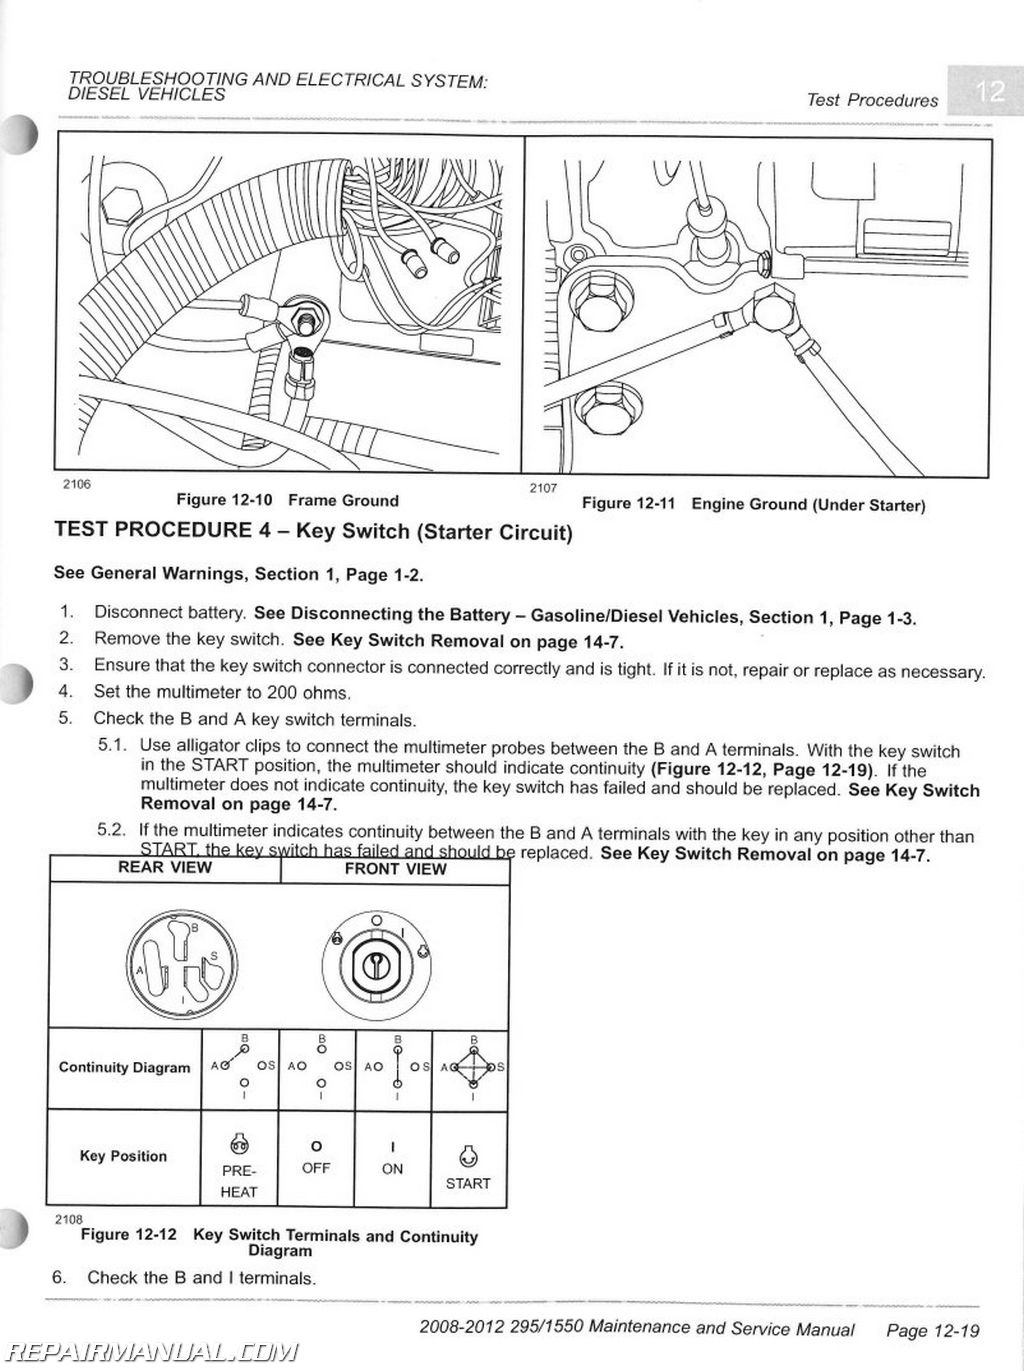 Club Car Carryall 2 Wiring Diagram - Wiring Diagram Online on club cart brakes, club cart engine diagram, club cart 48 volt battery, club car electrical schematic, club cart parts diagram, club cart wheels, club car wiring, club cart battery diagram, club cart ignition switch, club car diagram, club cart rear end diagram, club car electric motor repair, club cart lights, club cart batteries, club cart schematics, club cart cover, club cart coil diagram, club cart tires, club cart service manual, club car precedent enclosures,